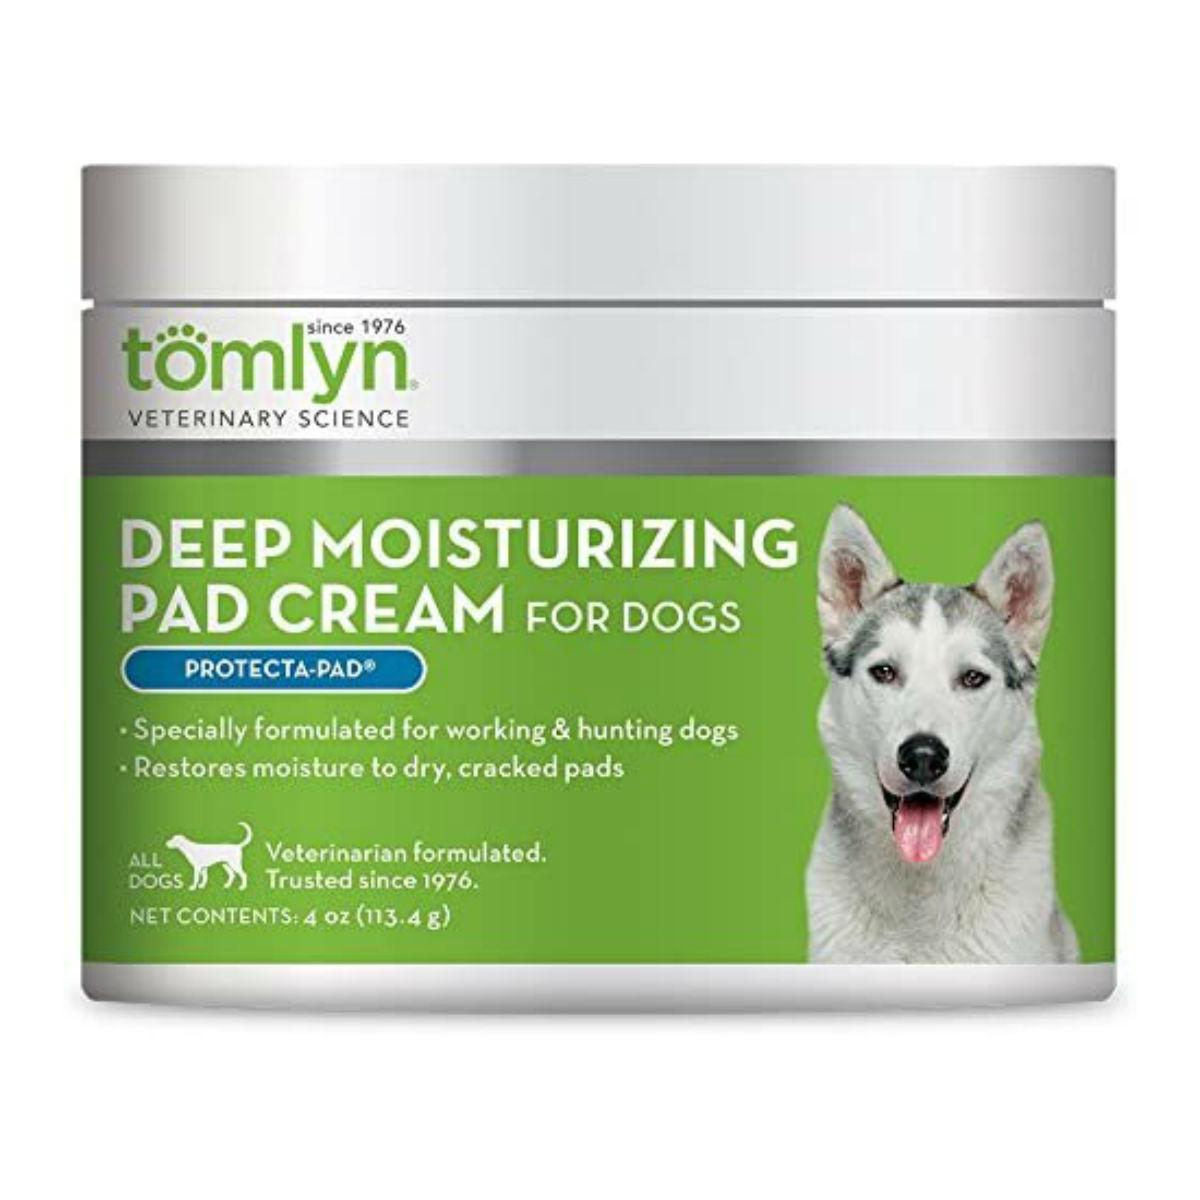 Tomlyn Protecta-Pad Dog Paw Pad and Elbow Cream